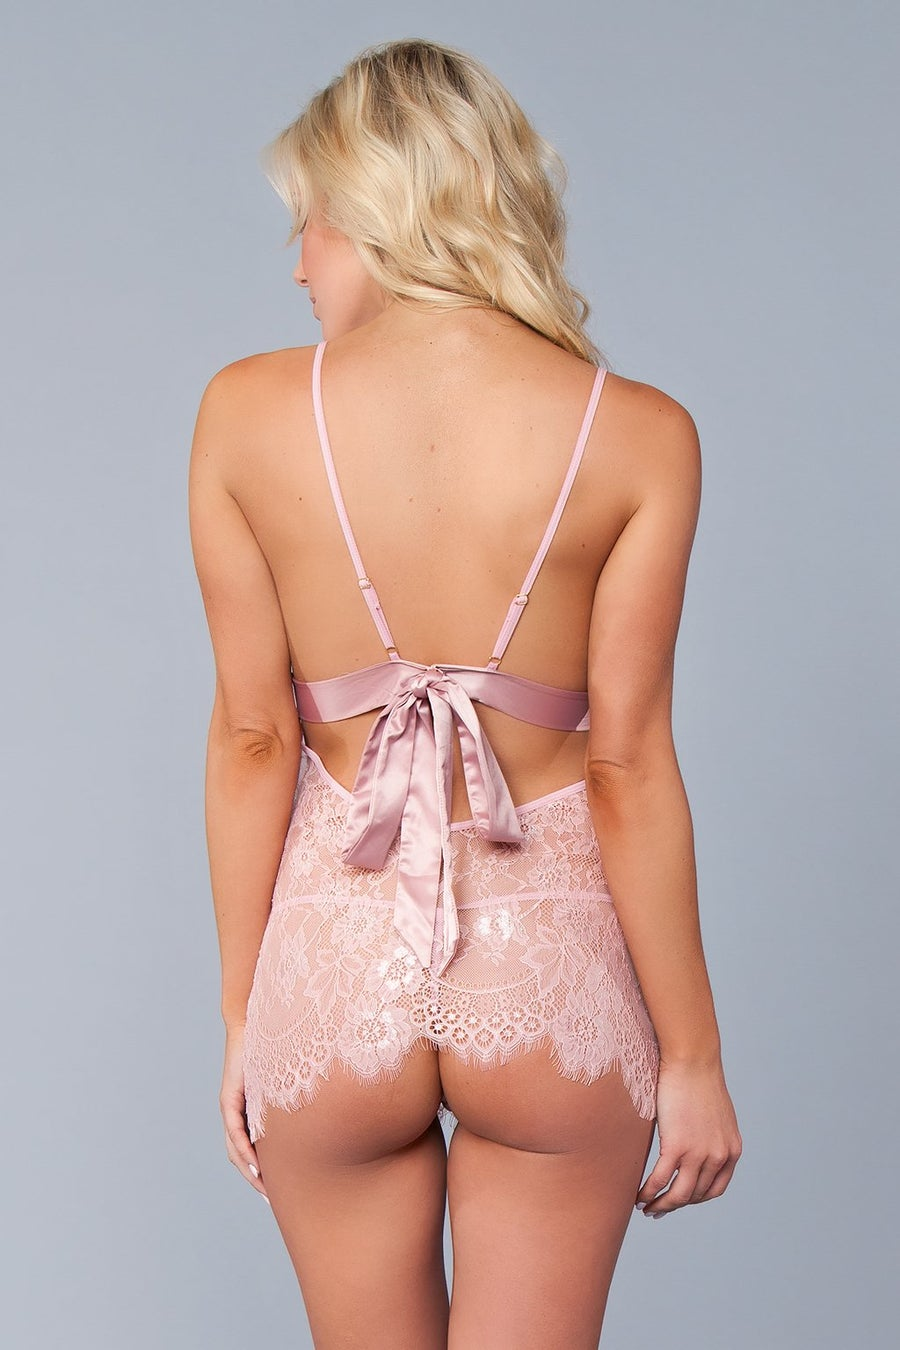 Image of Tie Me Down - Chemise